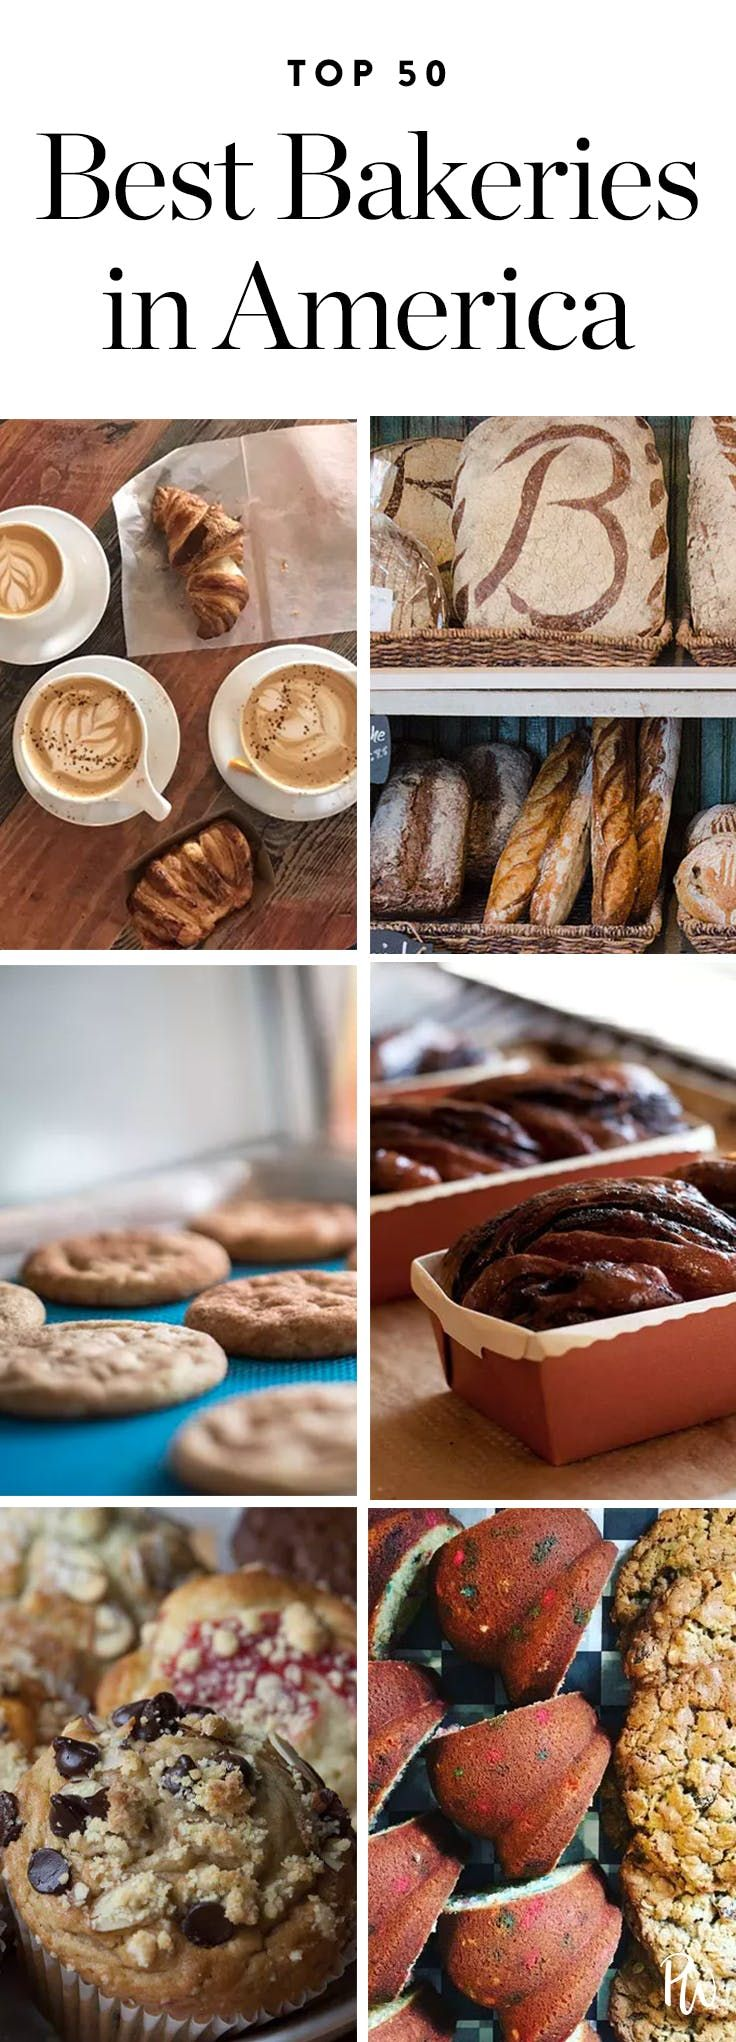 Get Our Picks For The Absolute Best Bakeries In US Here Bestbakeries Cookies Cakes Cupcakes Coffee Baking